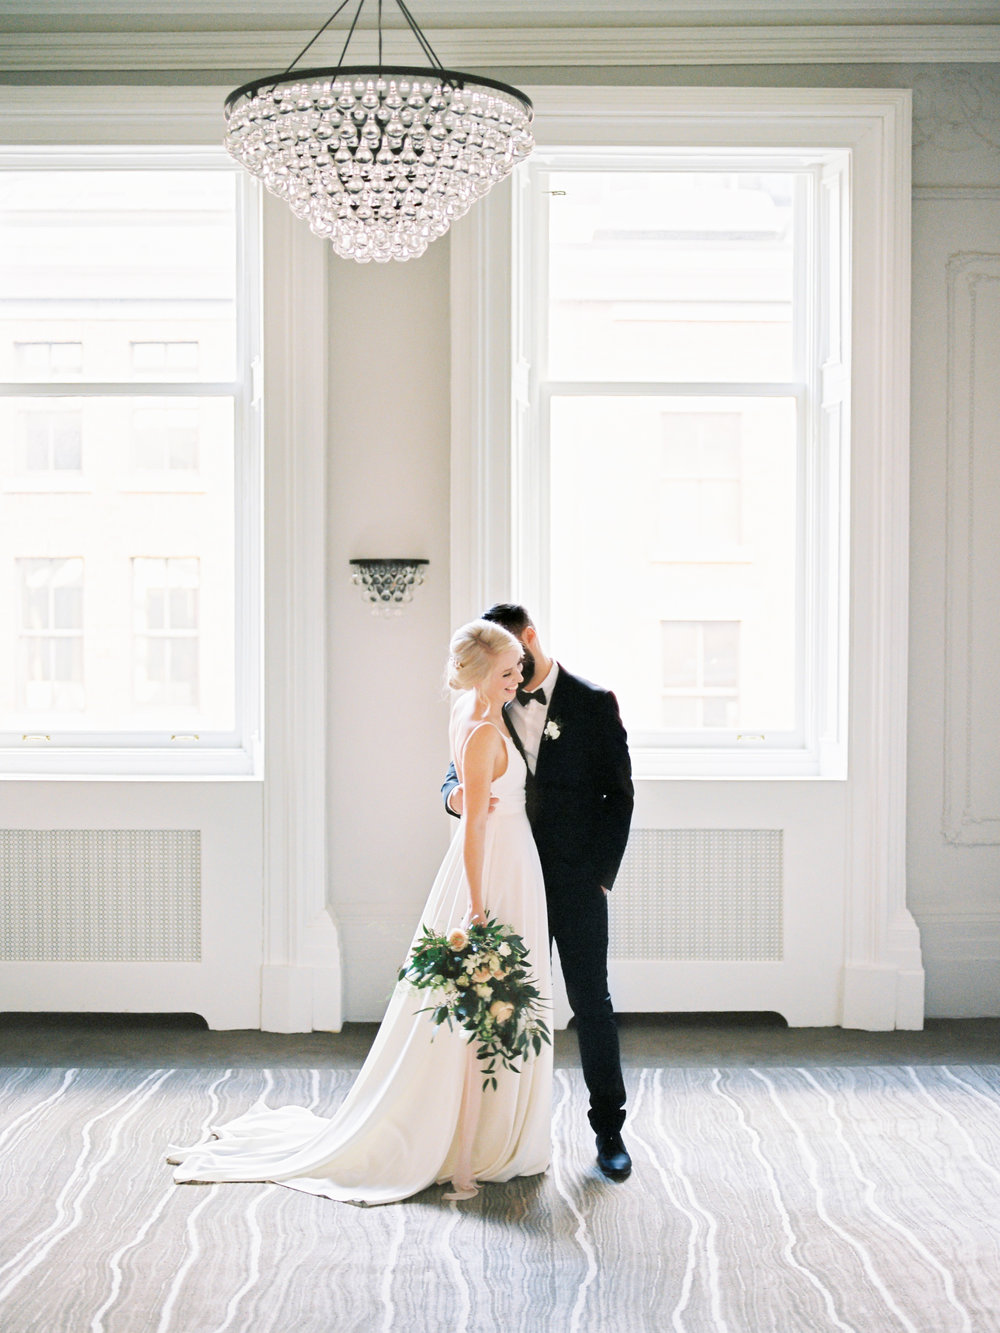 RACHEL + ILYA - The Halifax Club, Halifax